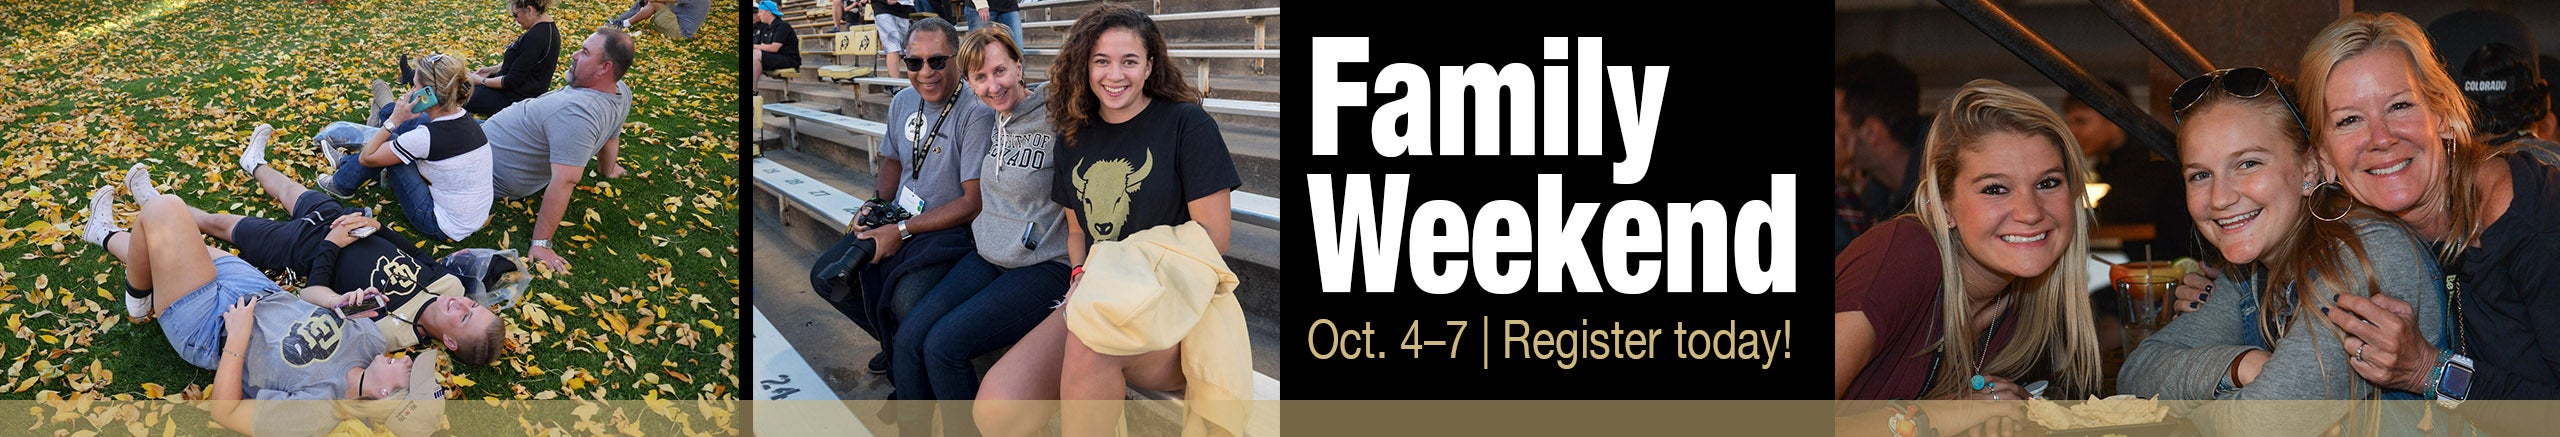 Family Weekend Oct. 4–7 Register now